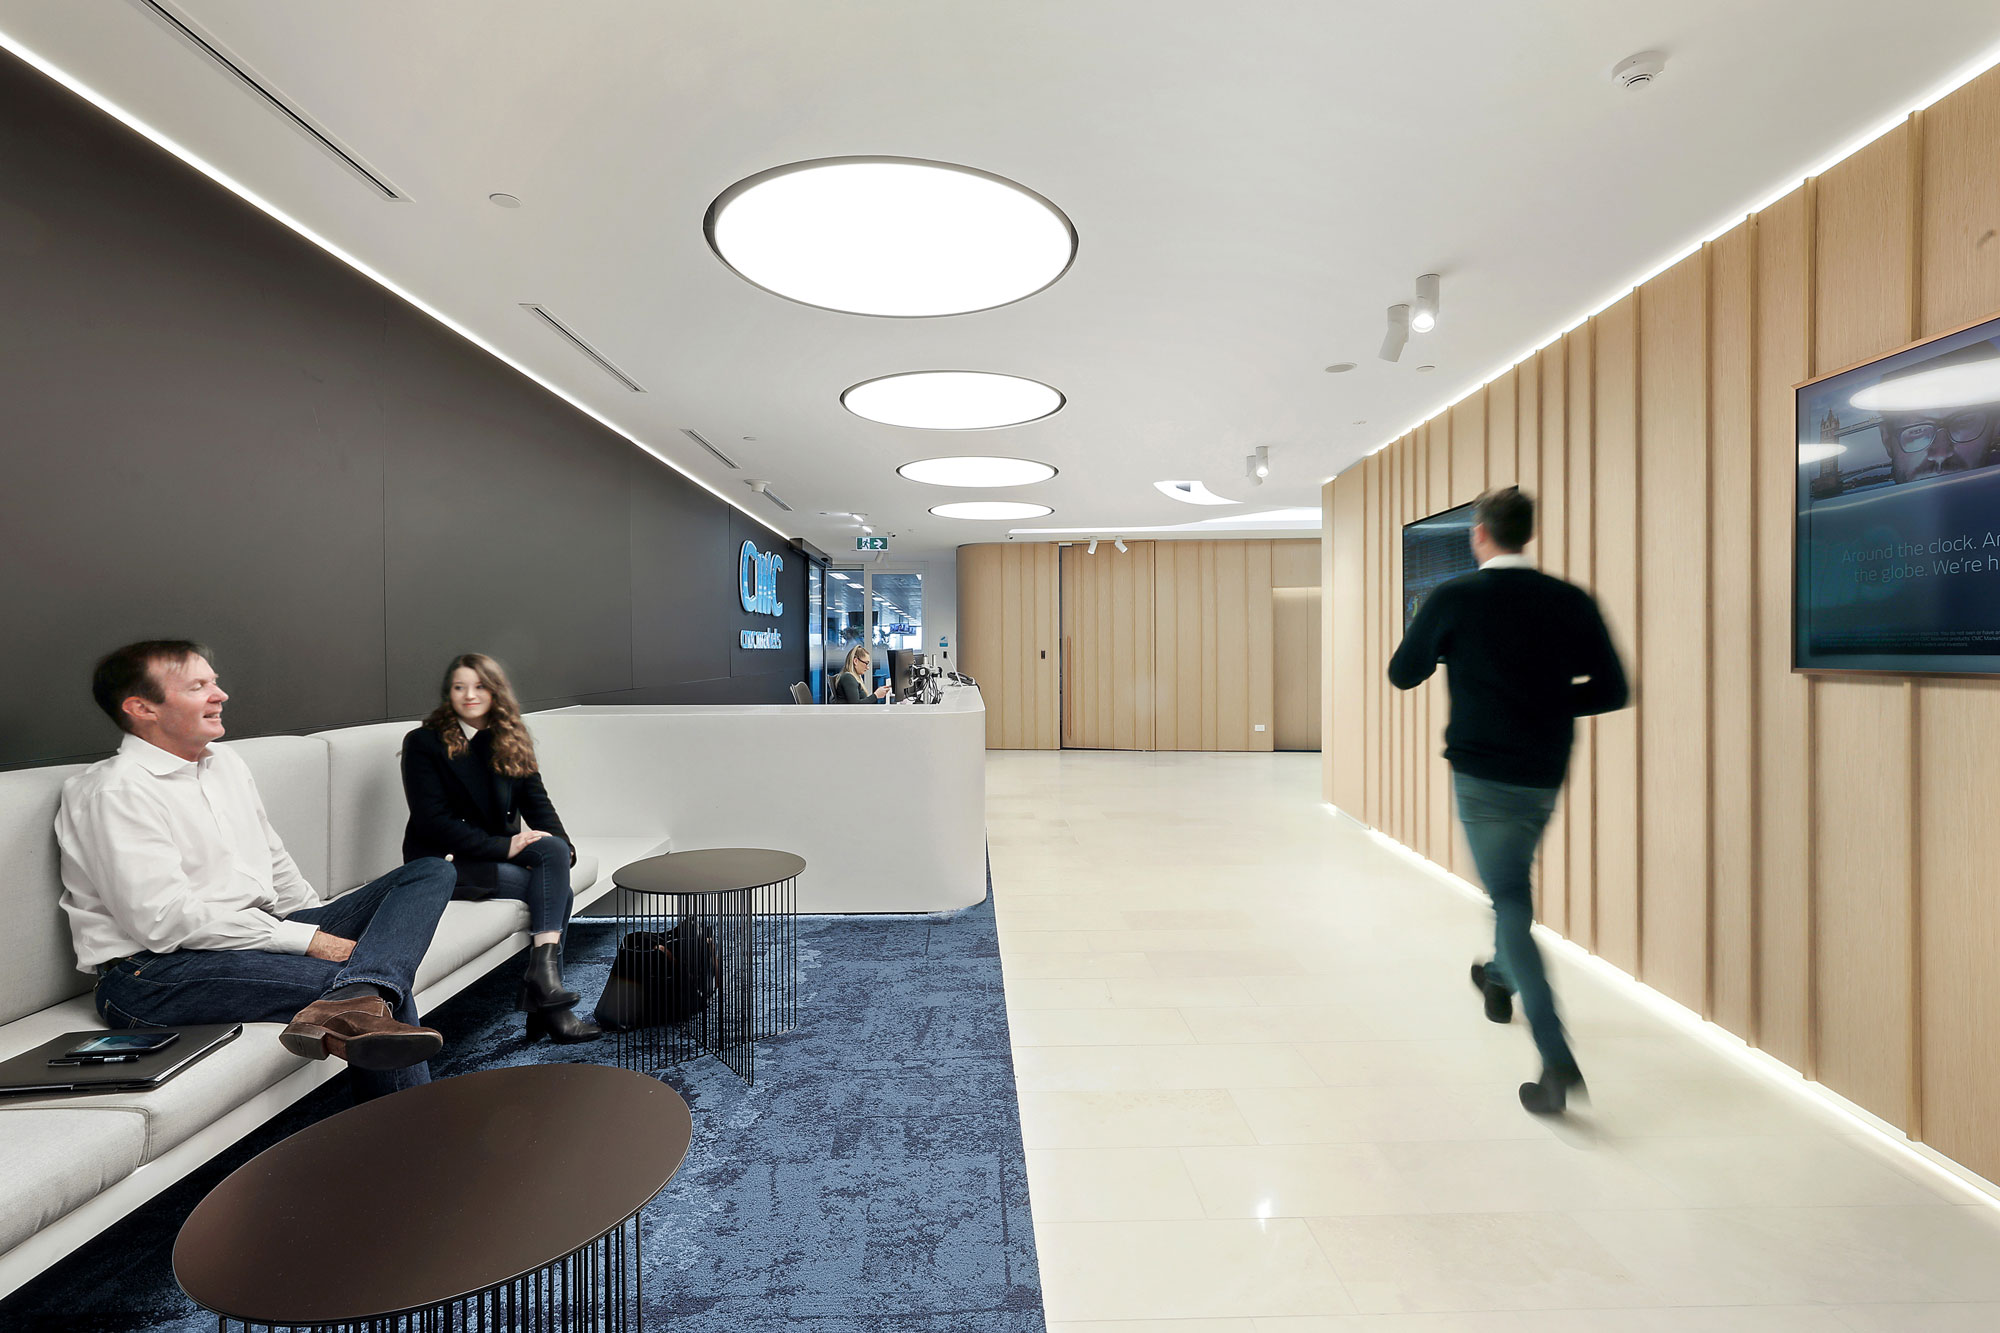 Cmc markets l20 3 international towers barangaroo high reception area 1 2000